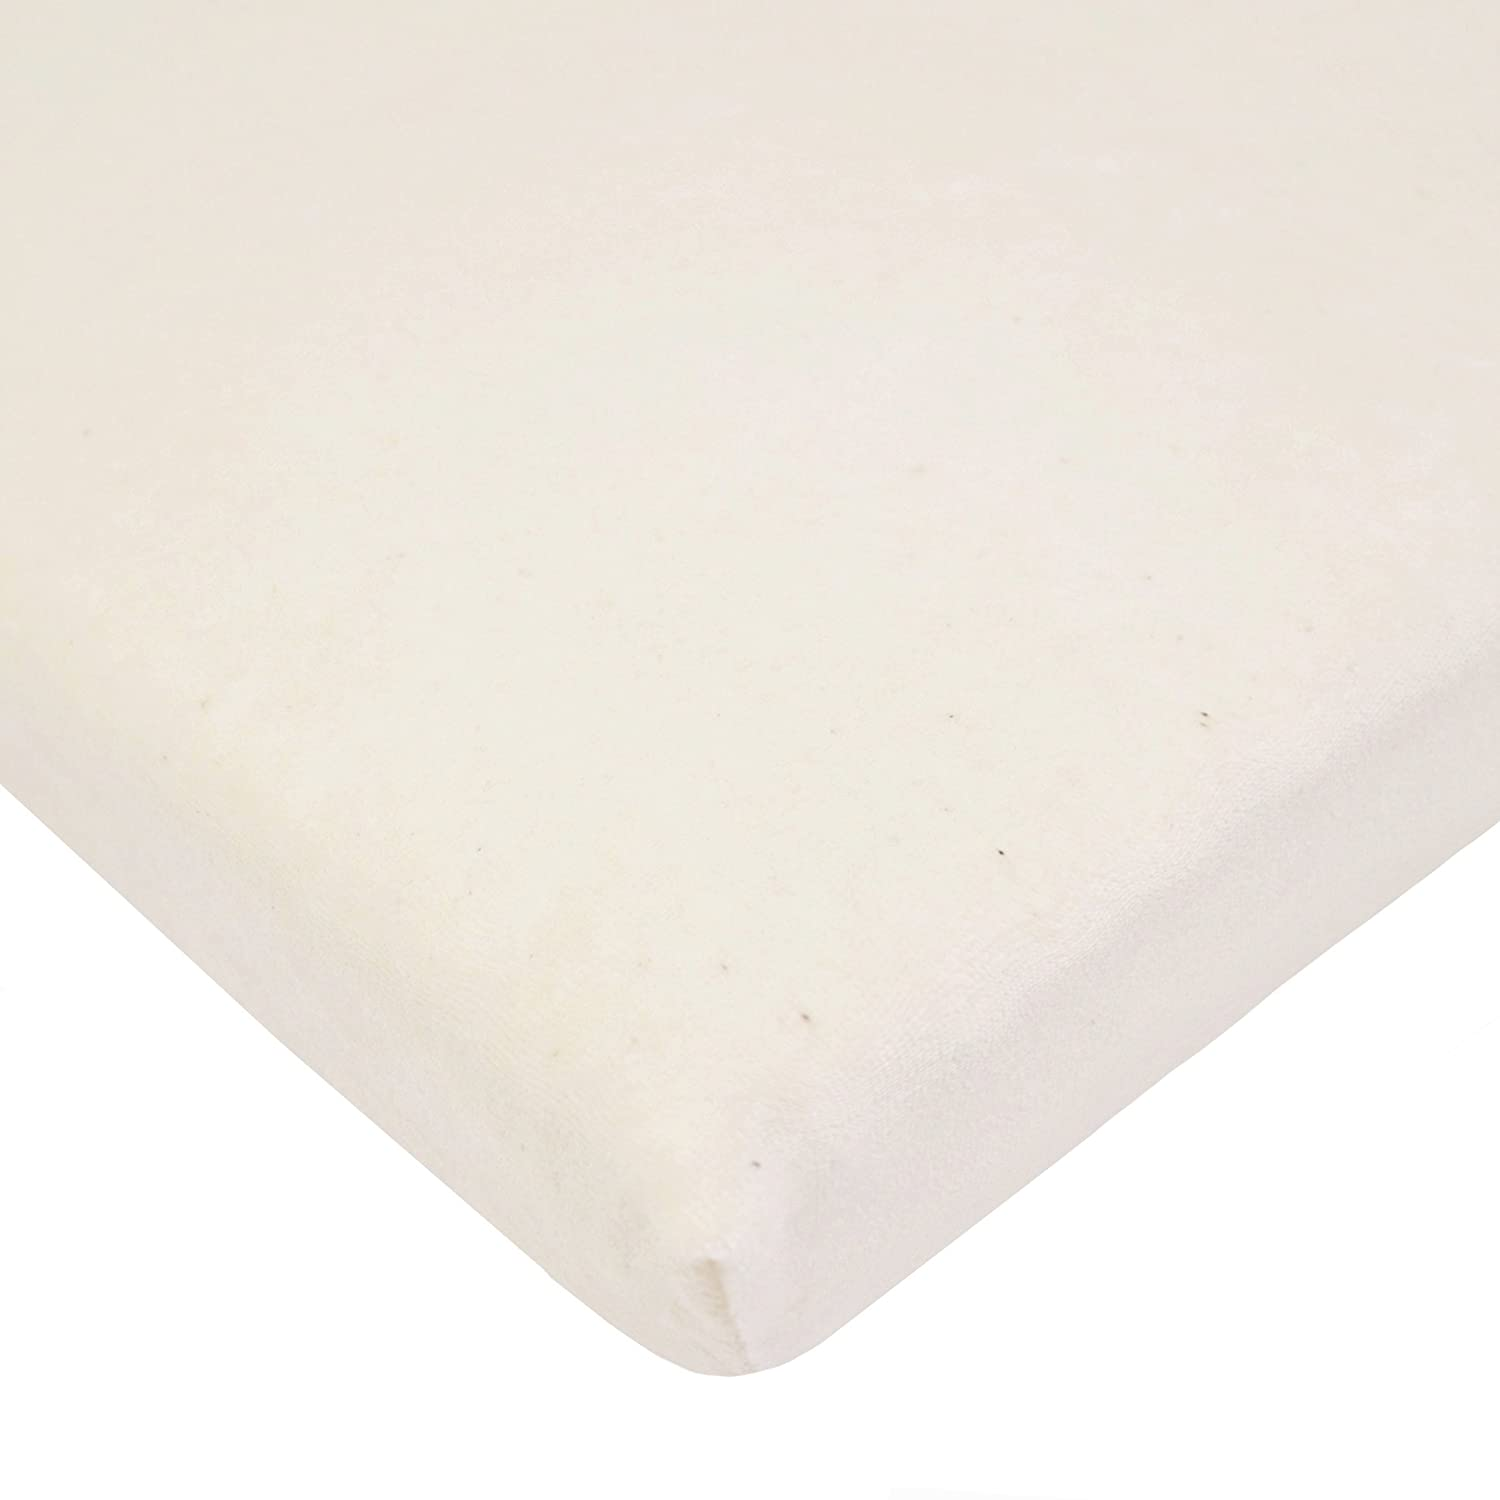 Amazon.com : American Baby Company Velour Fitted Pack N Play Playard Sheet  made with Organic Cotton, Natural Color : Playard Bedding : Baby